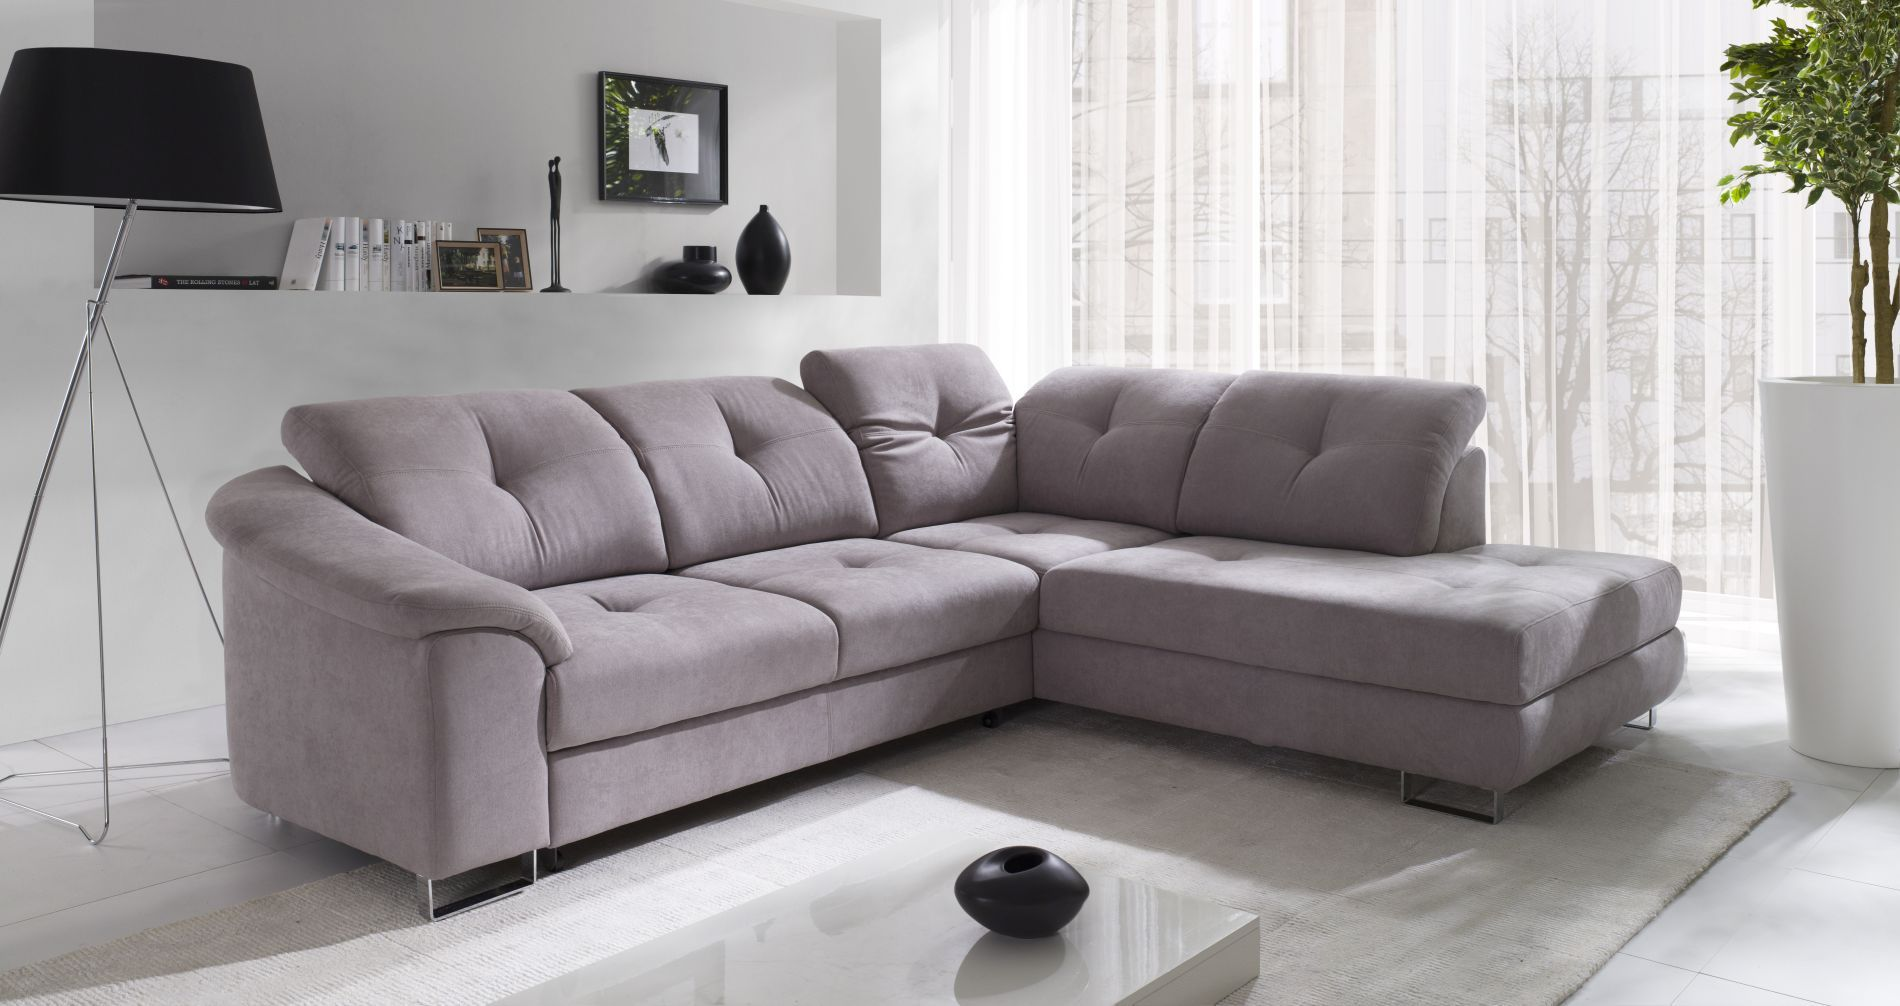 Salon Beige Coltar Nobilia New Home Sofa Corner Sofa Sofa Bed